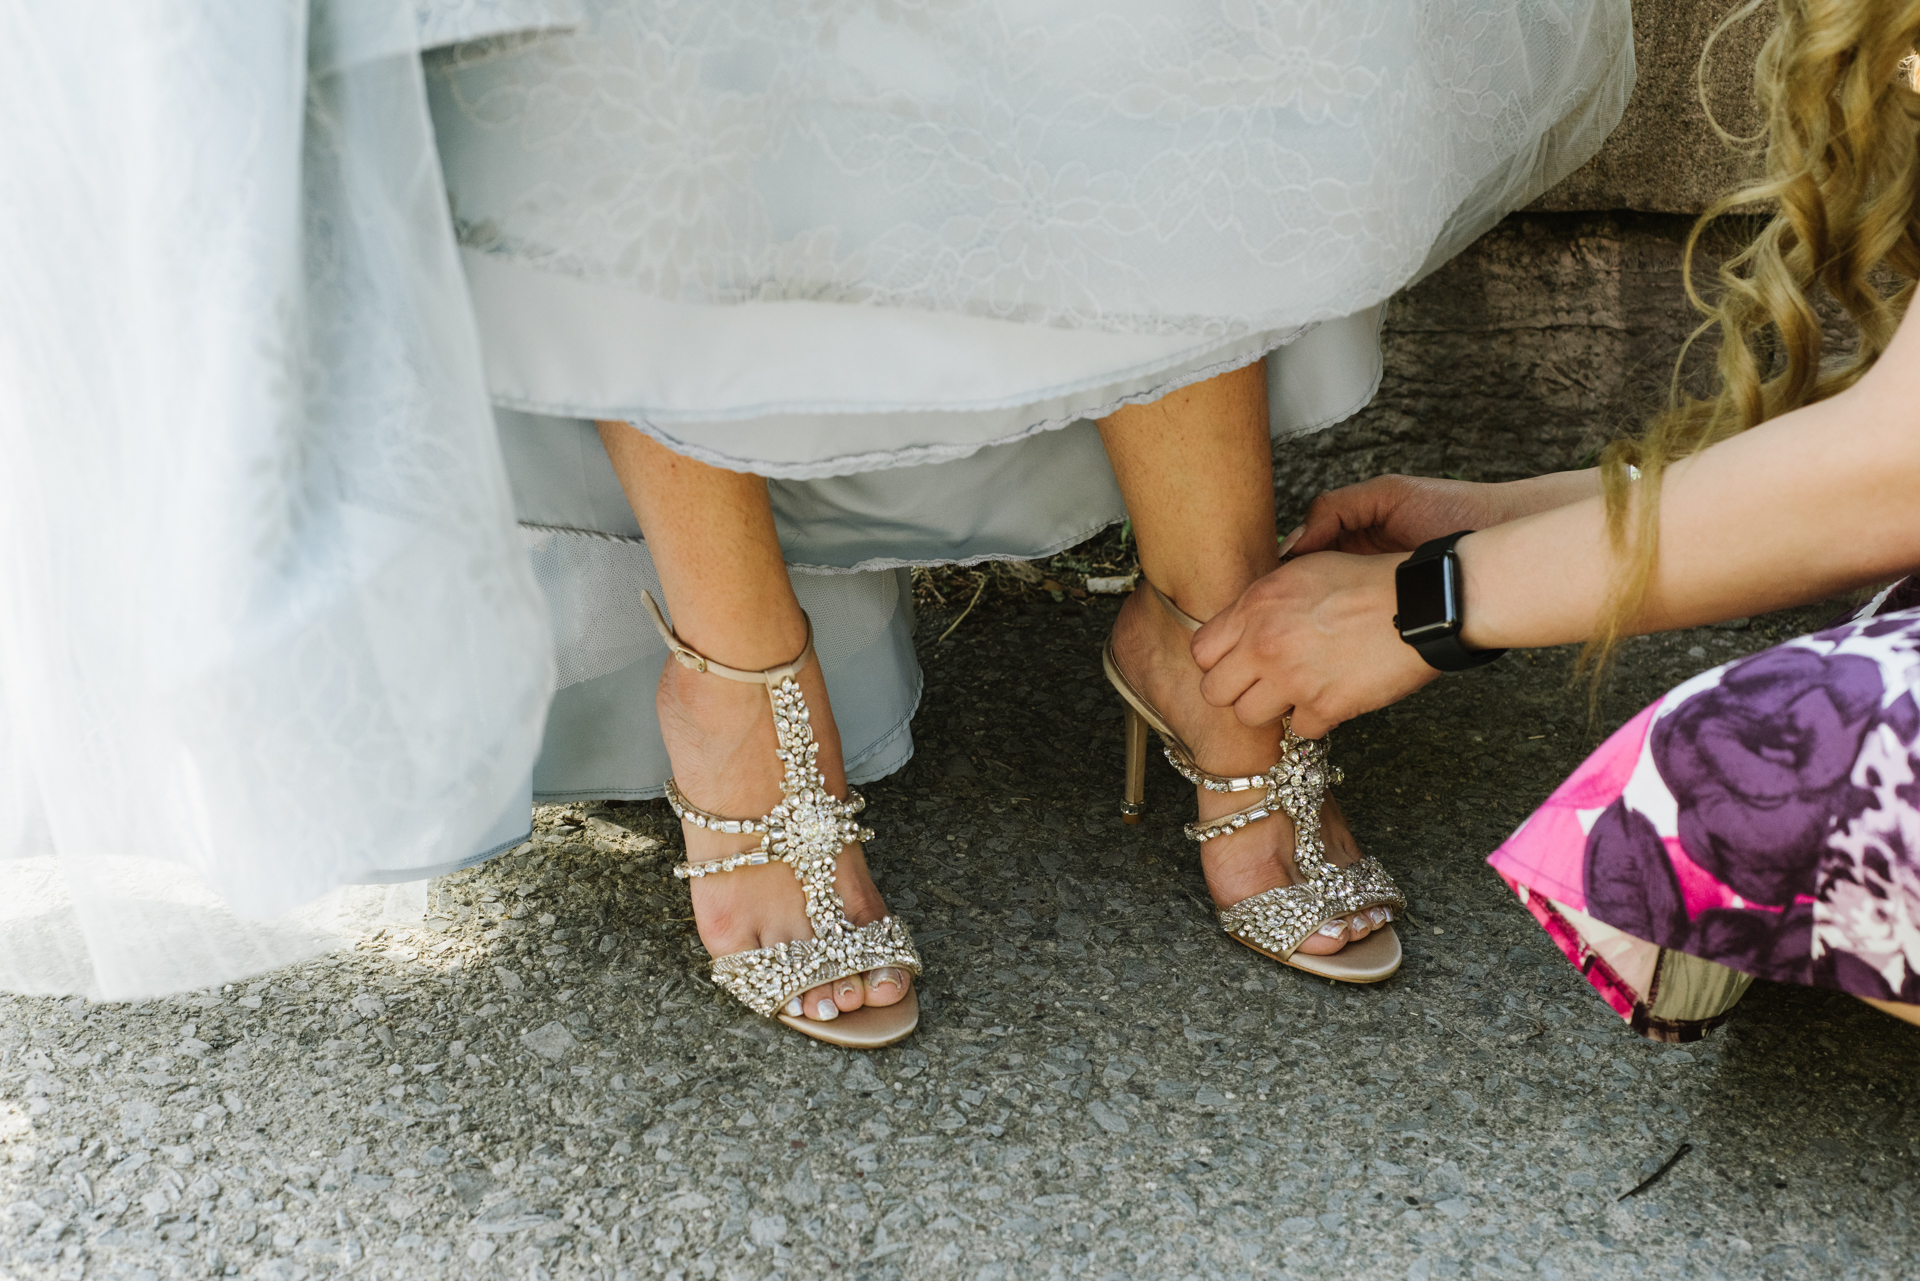 Albany, New York, USA Elopement Wedding Photo Detail | The bride's very elaborate shoes made of gems